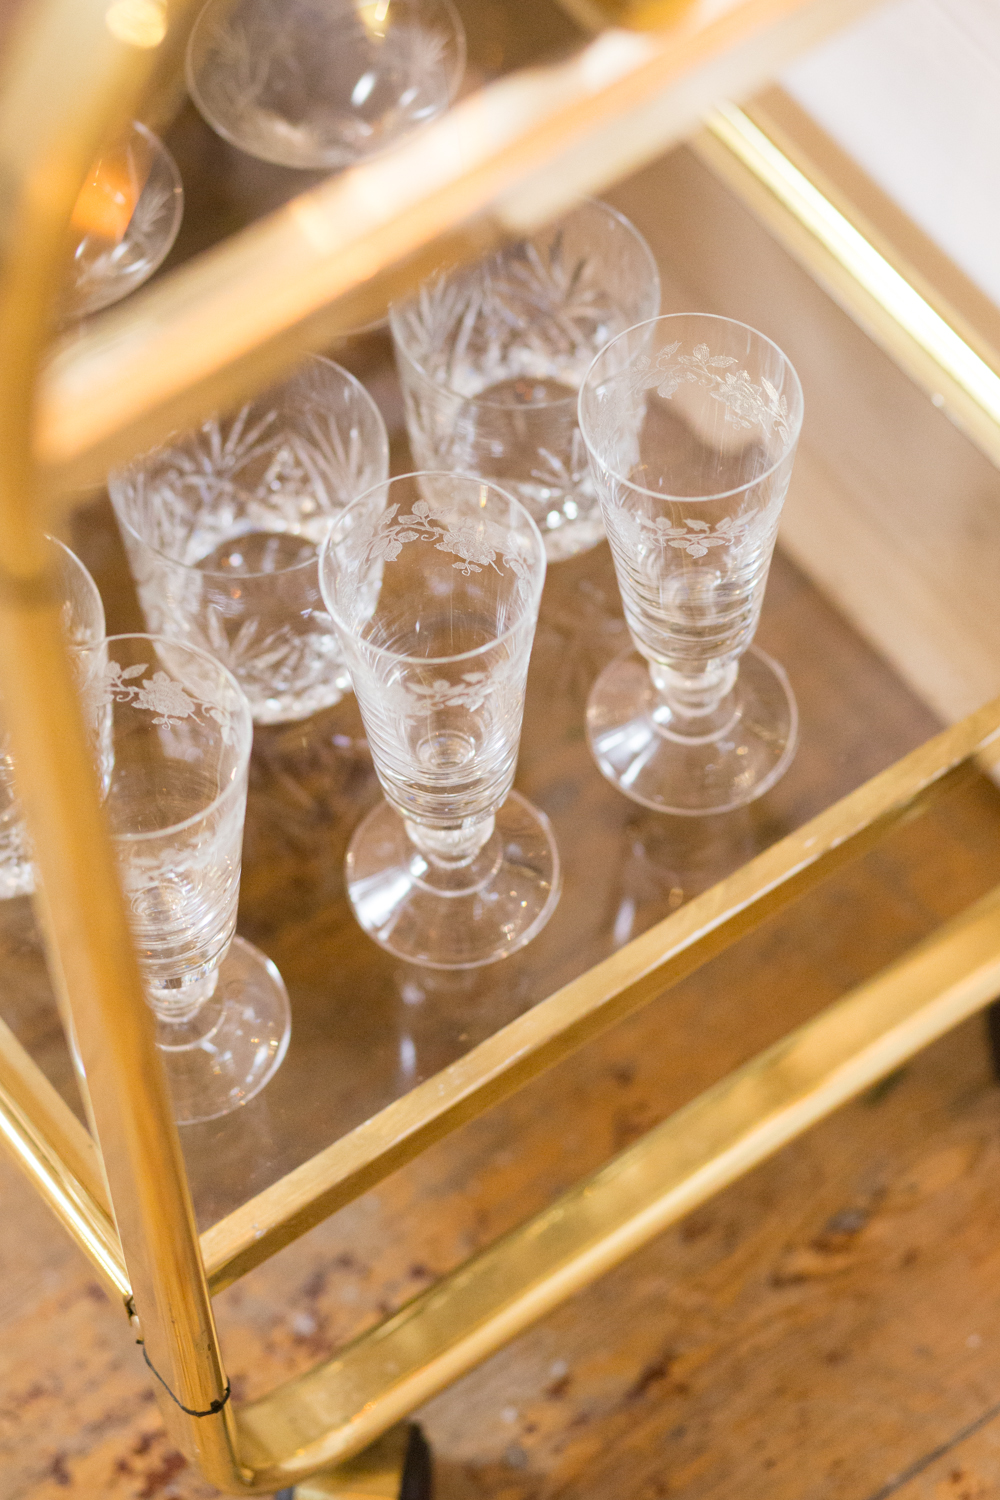 Glassware: From £1.00